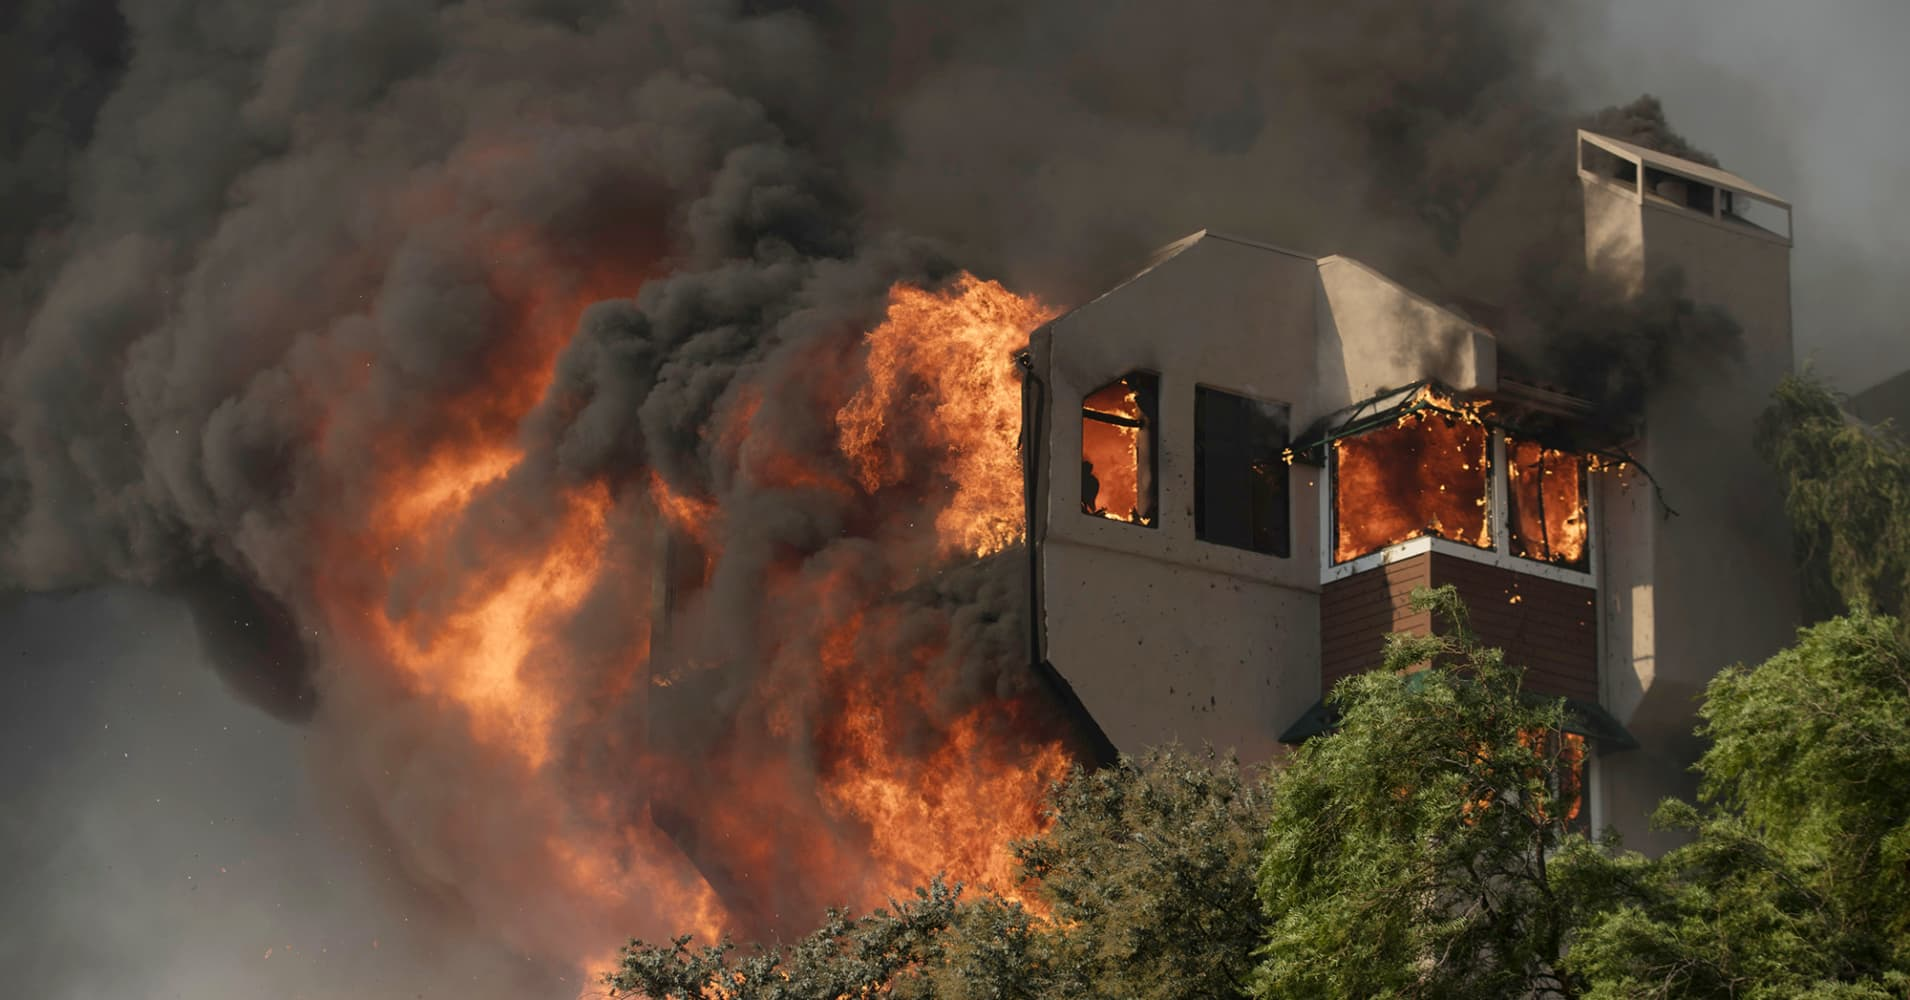 $5 billion worth of Southern California real estate faces significant fire risk